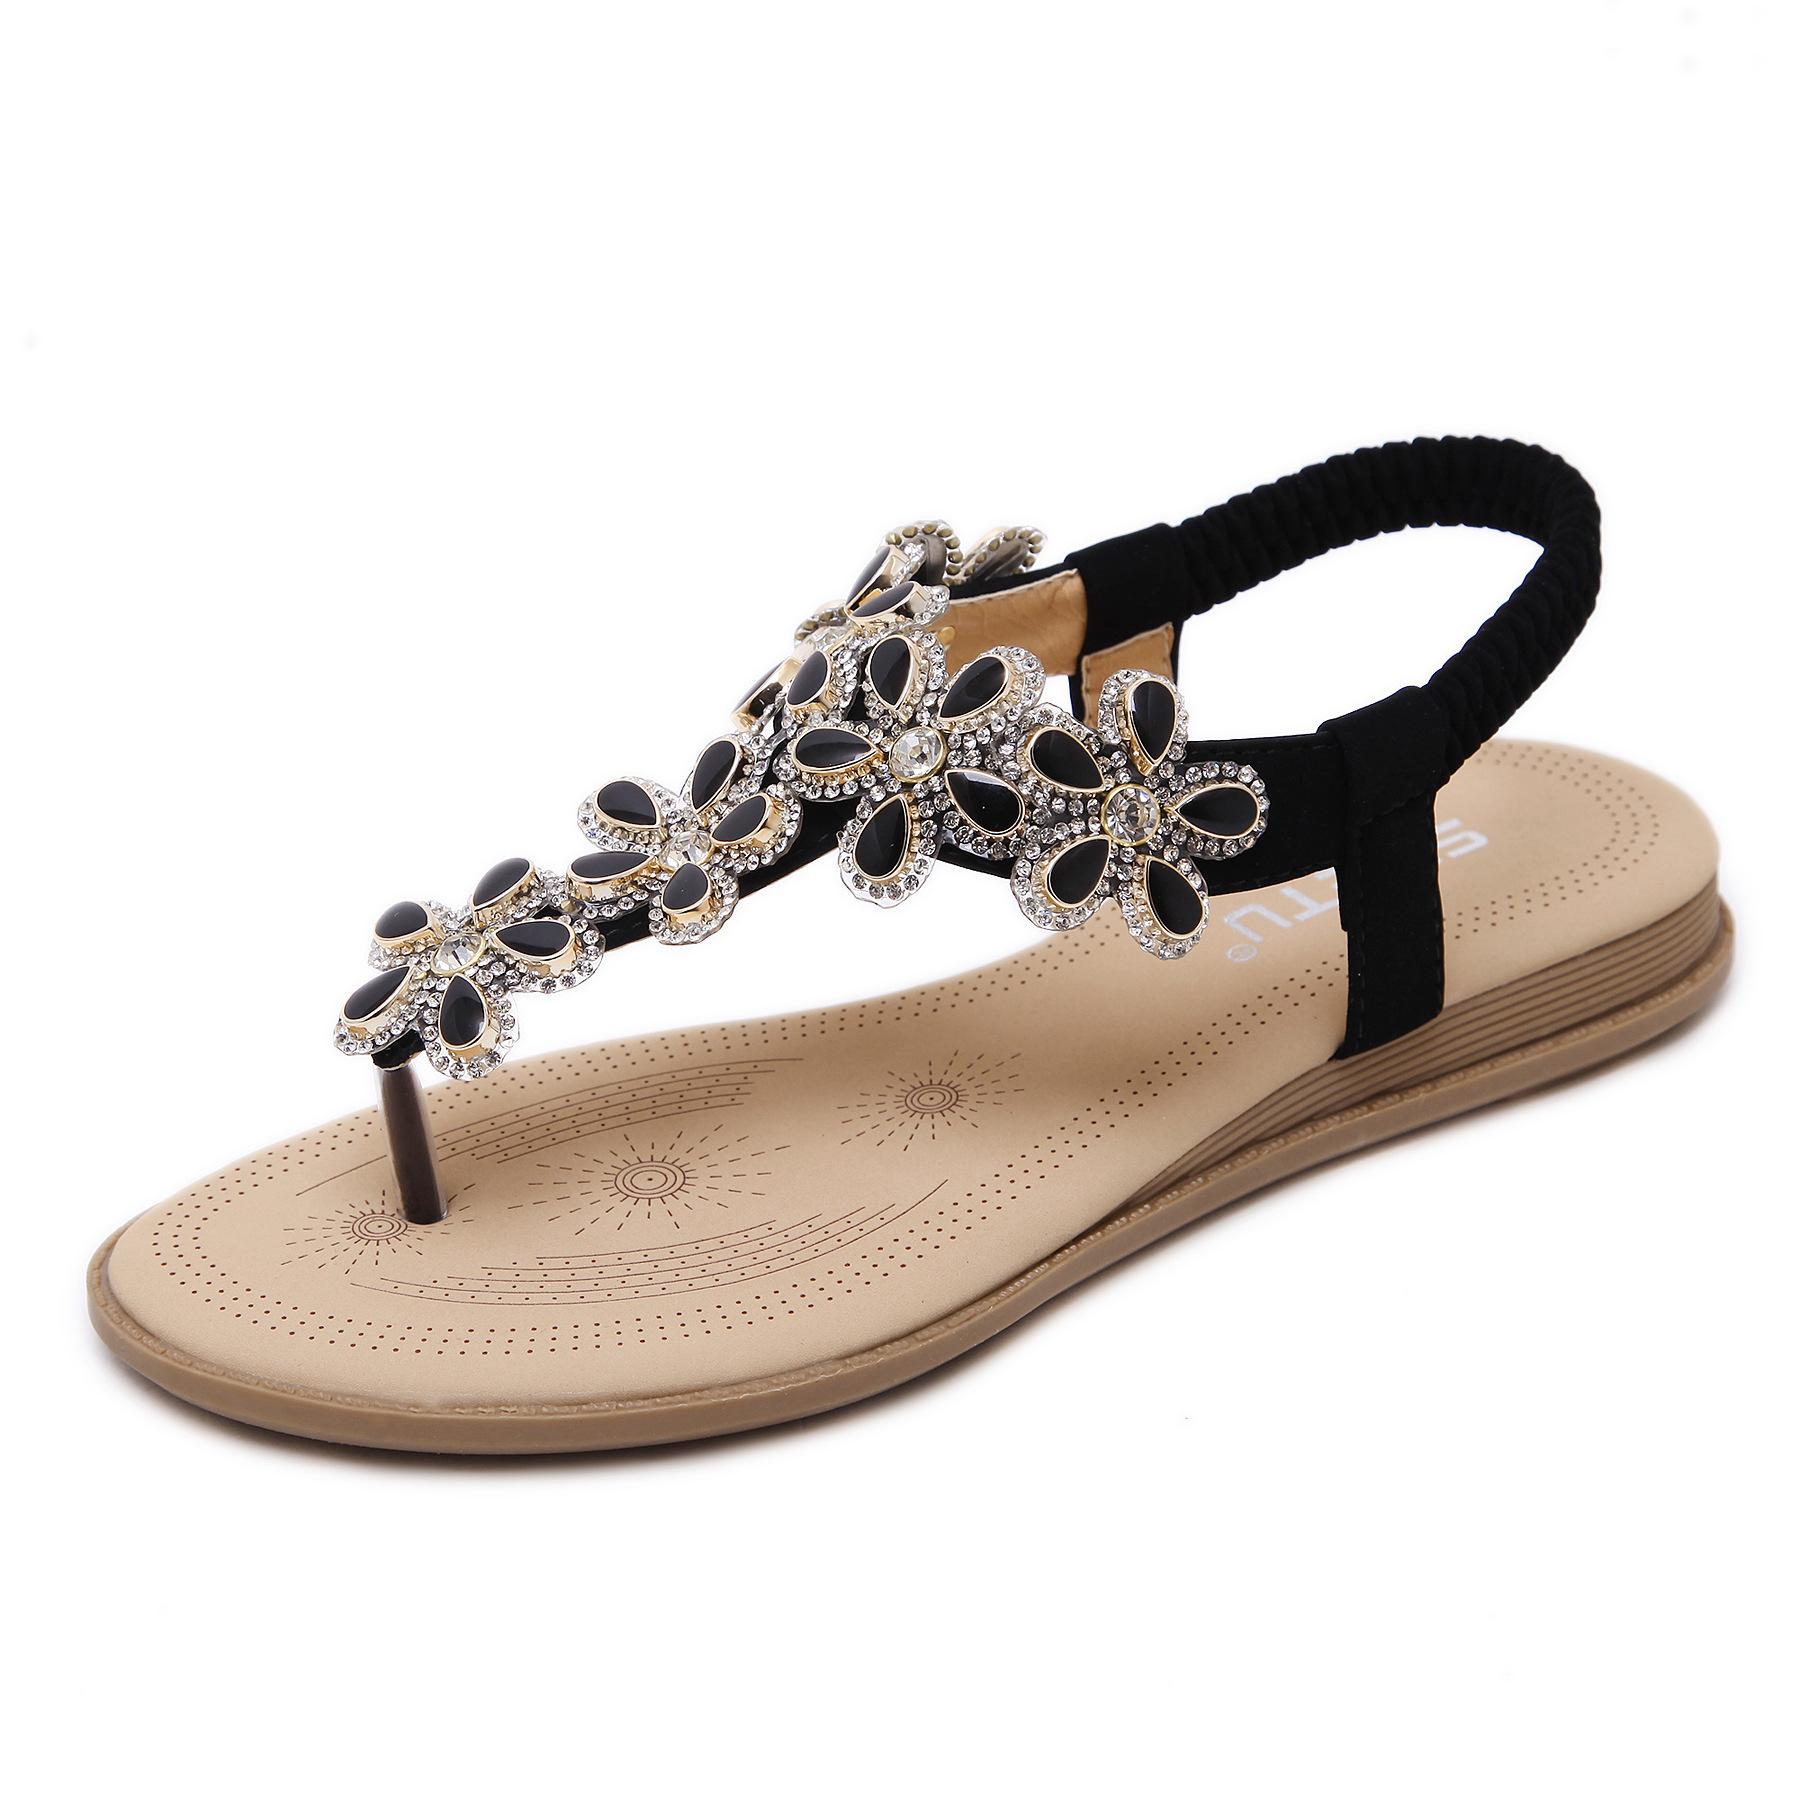 a175d3594f7dd 2019 New Summer Women Sandals Flat Bohemian Flowers Rhinestone Roman Flip  Flops Gladiator Glitter Big Size Ladies Shoes Cheap Shoes Online Fashion  Shoes ...